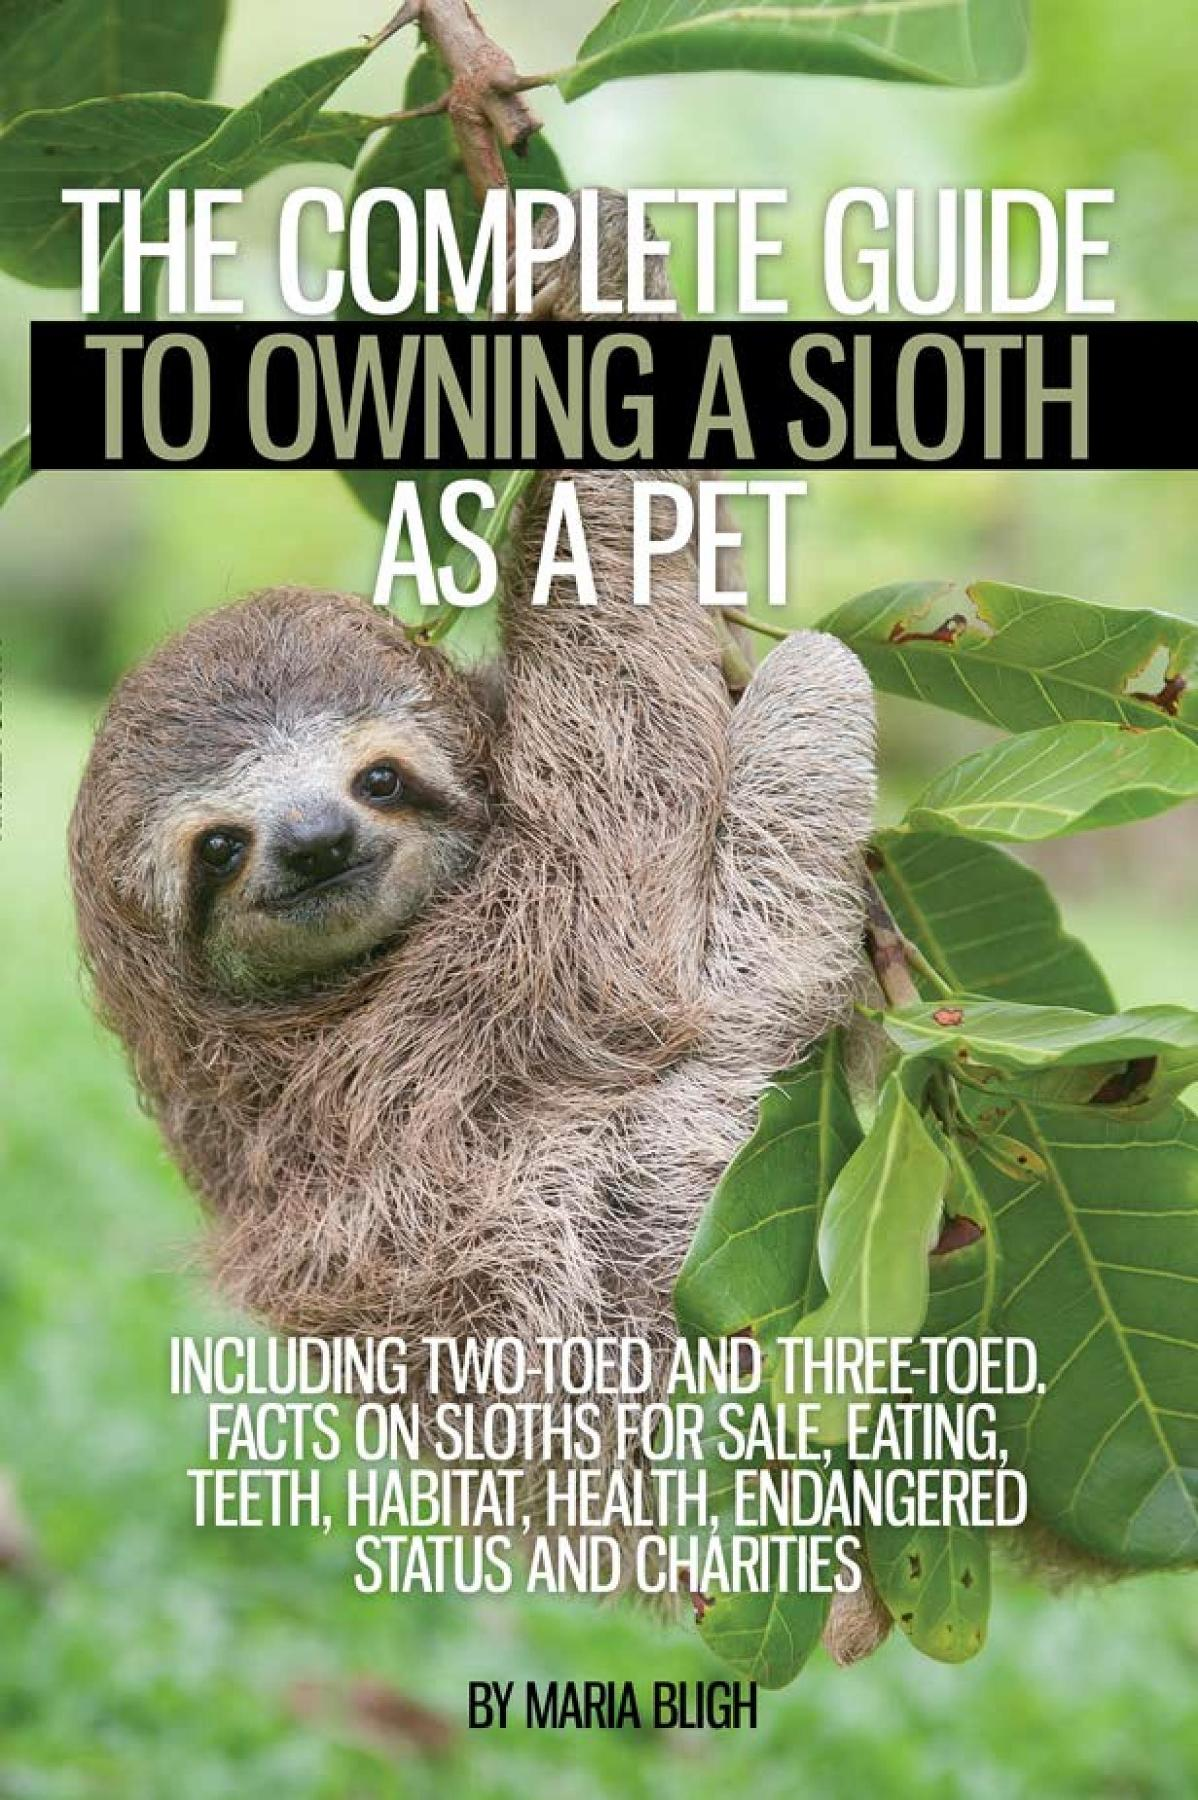 the characteristics and endangerment of sloths a type of mammal Endangered animals: three-toed sloth sloths are among the slowest-moving animals on earth they can swim but are virtually unable to walk this makes them an easy target for jaguars, eagles and people that hunt sloths for their meat.